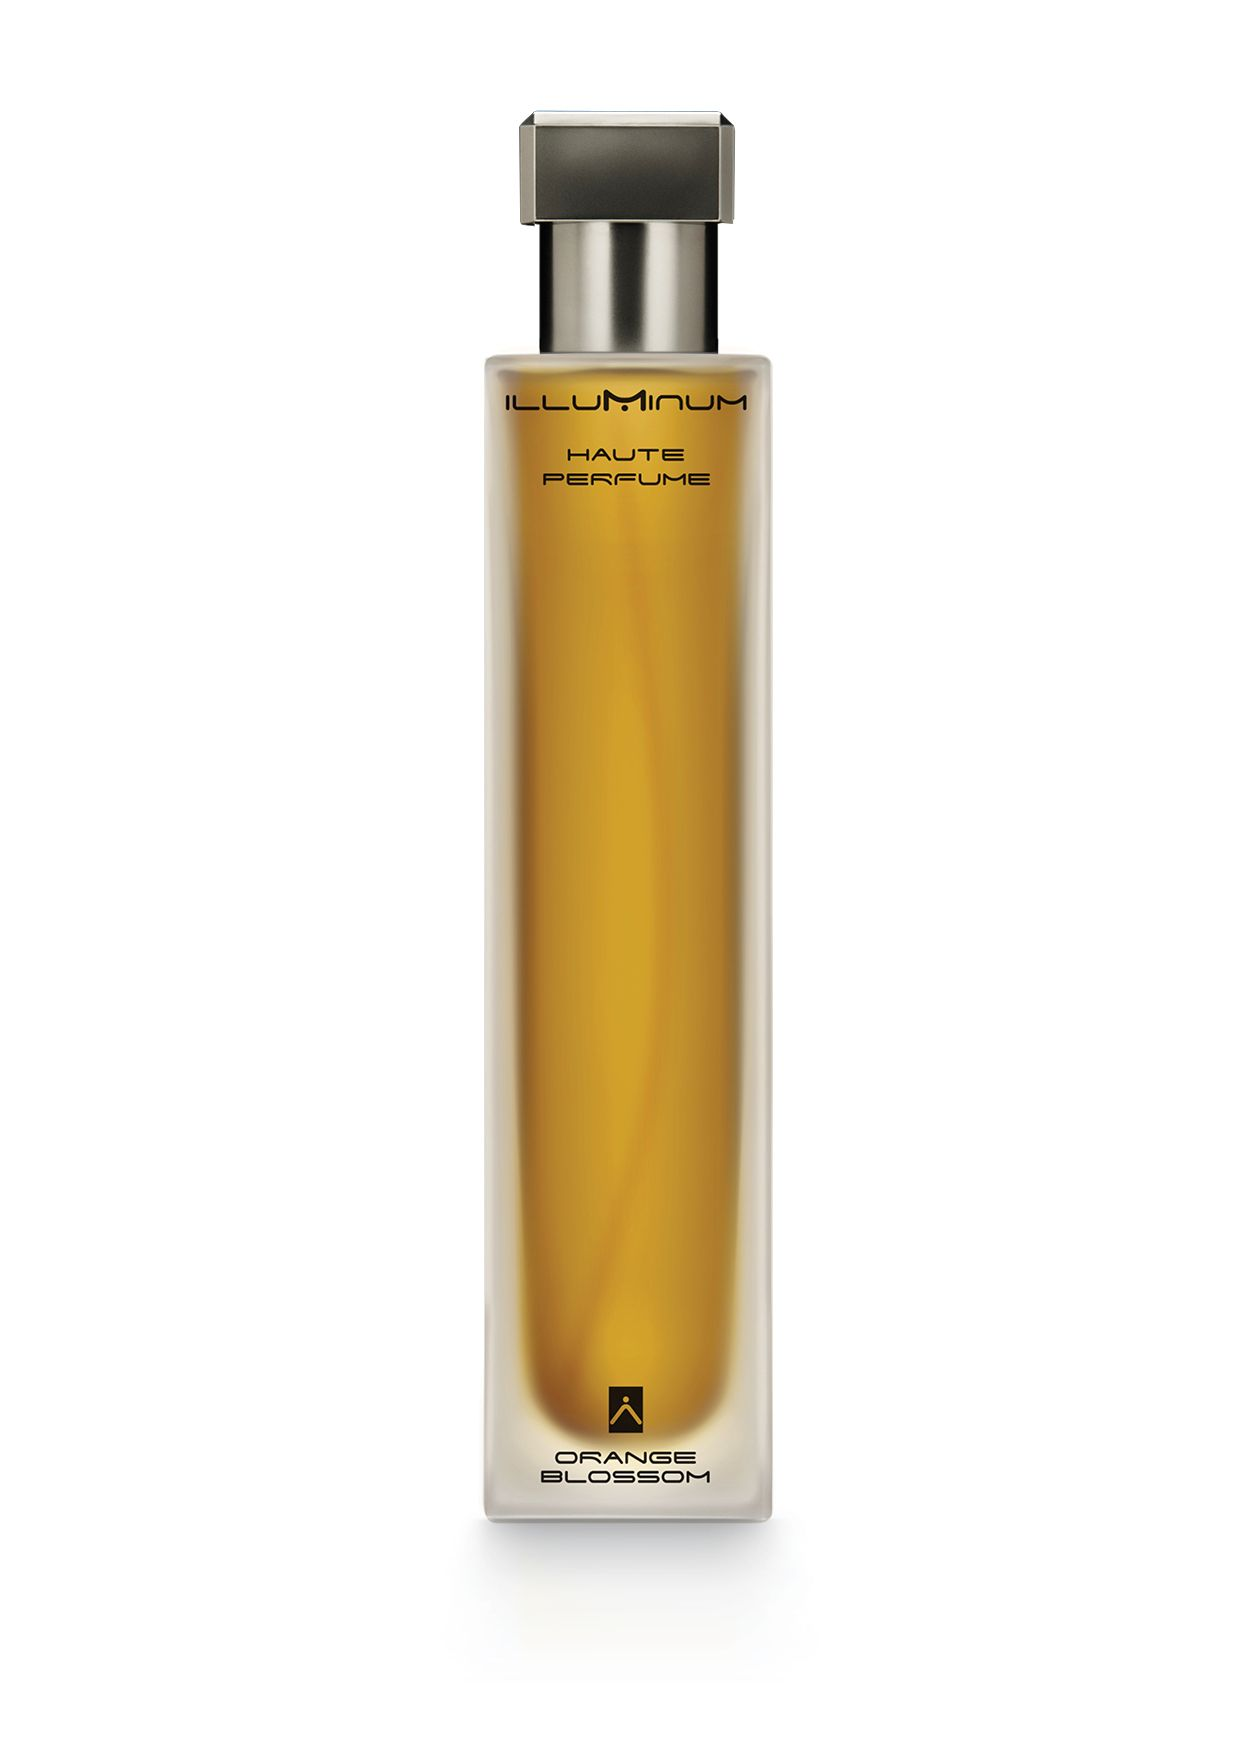 Orange Blossom Haute Perfume 100ml